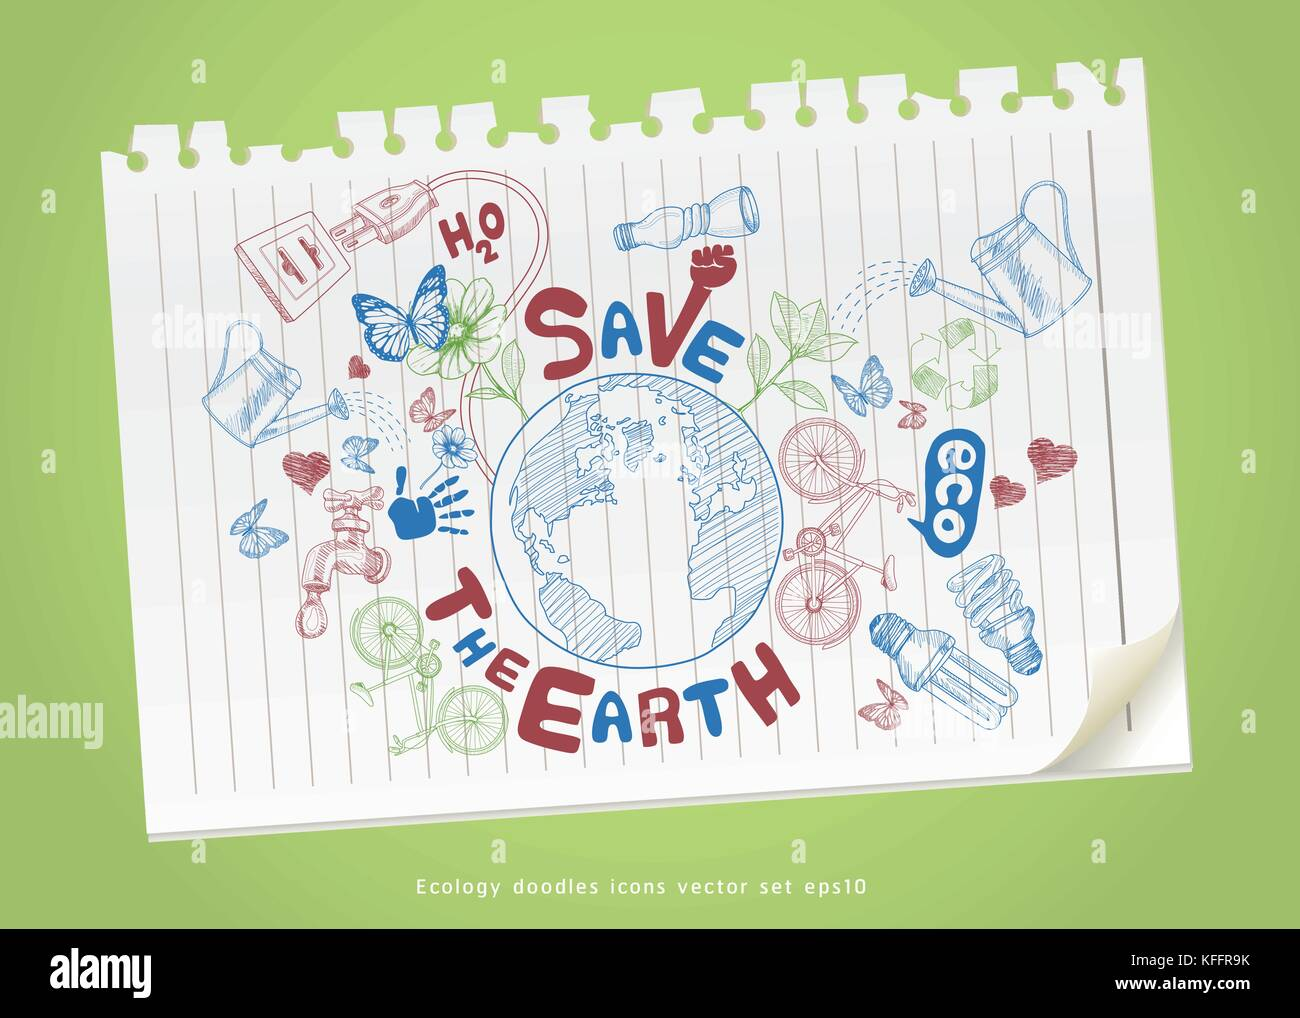 Green World Drawing Concept Save The Earth Ecology Doodles Icons